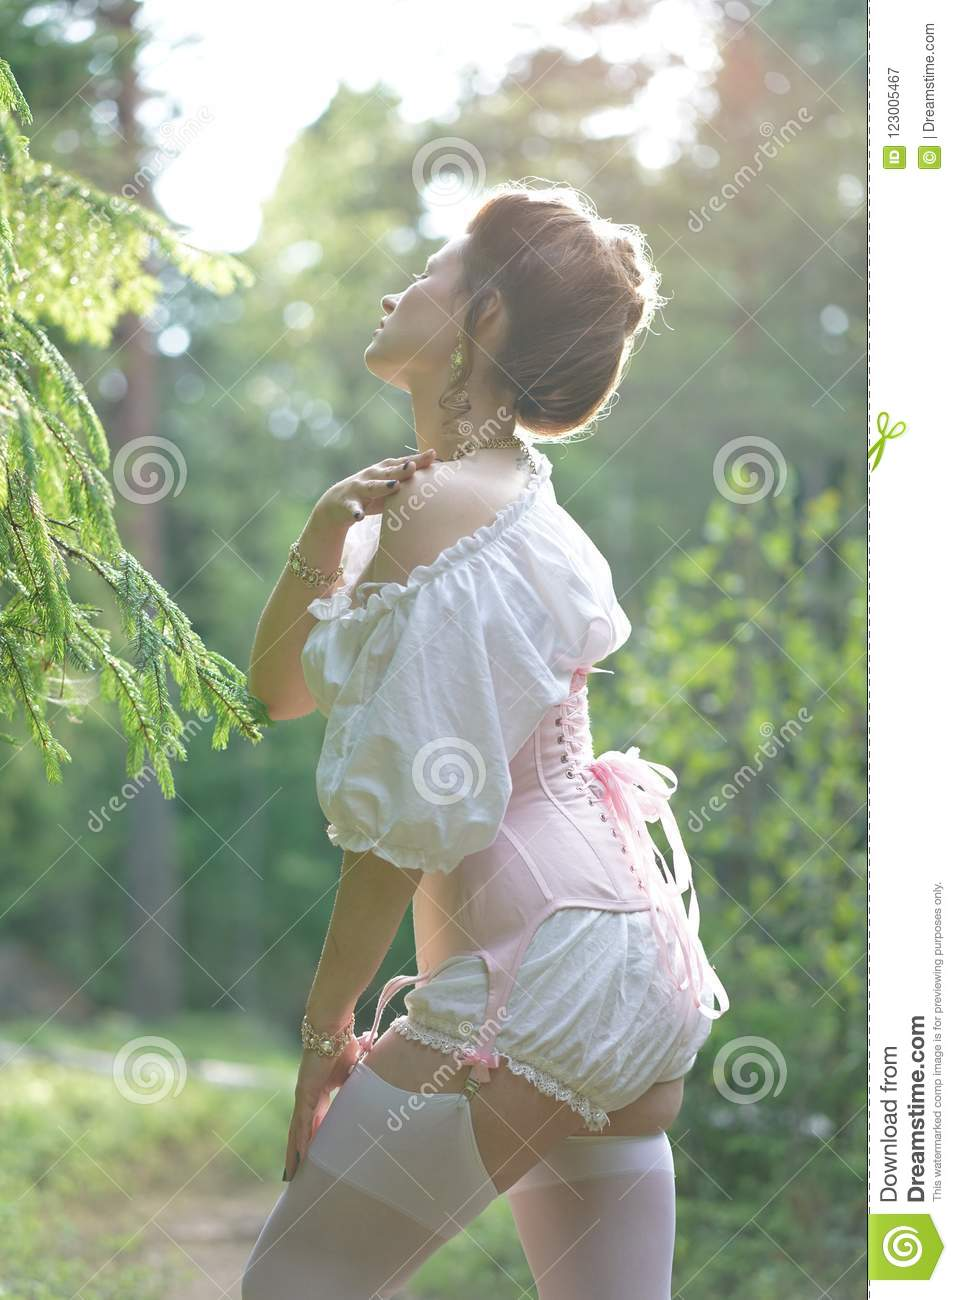 966c0cf8c01 Beautiful young chubby girl posing in medieval retro corset and white  vintage lingerie in the forest